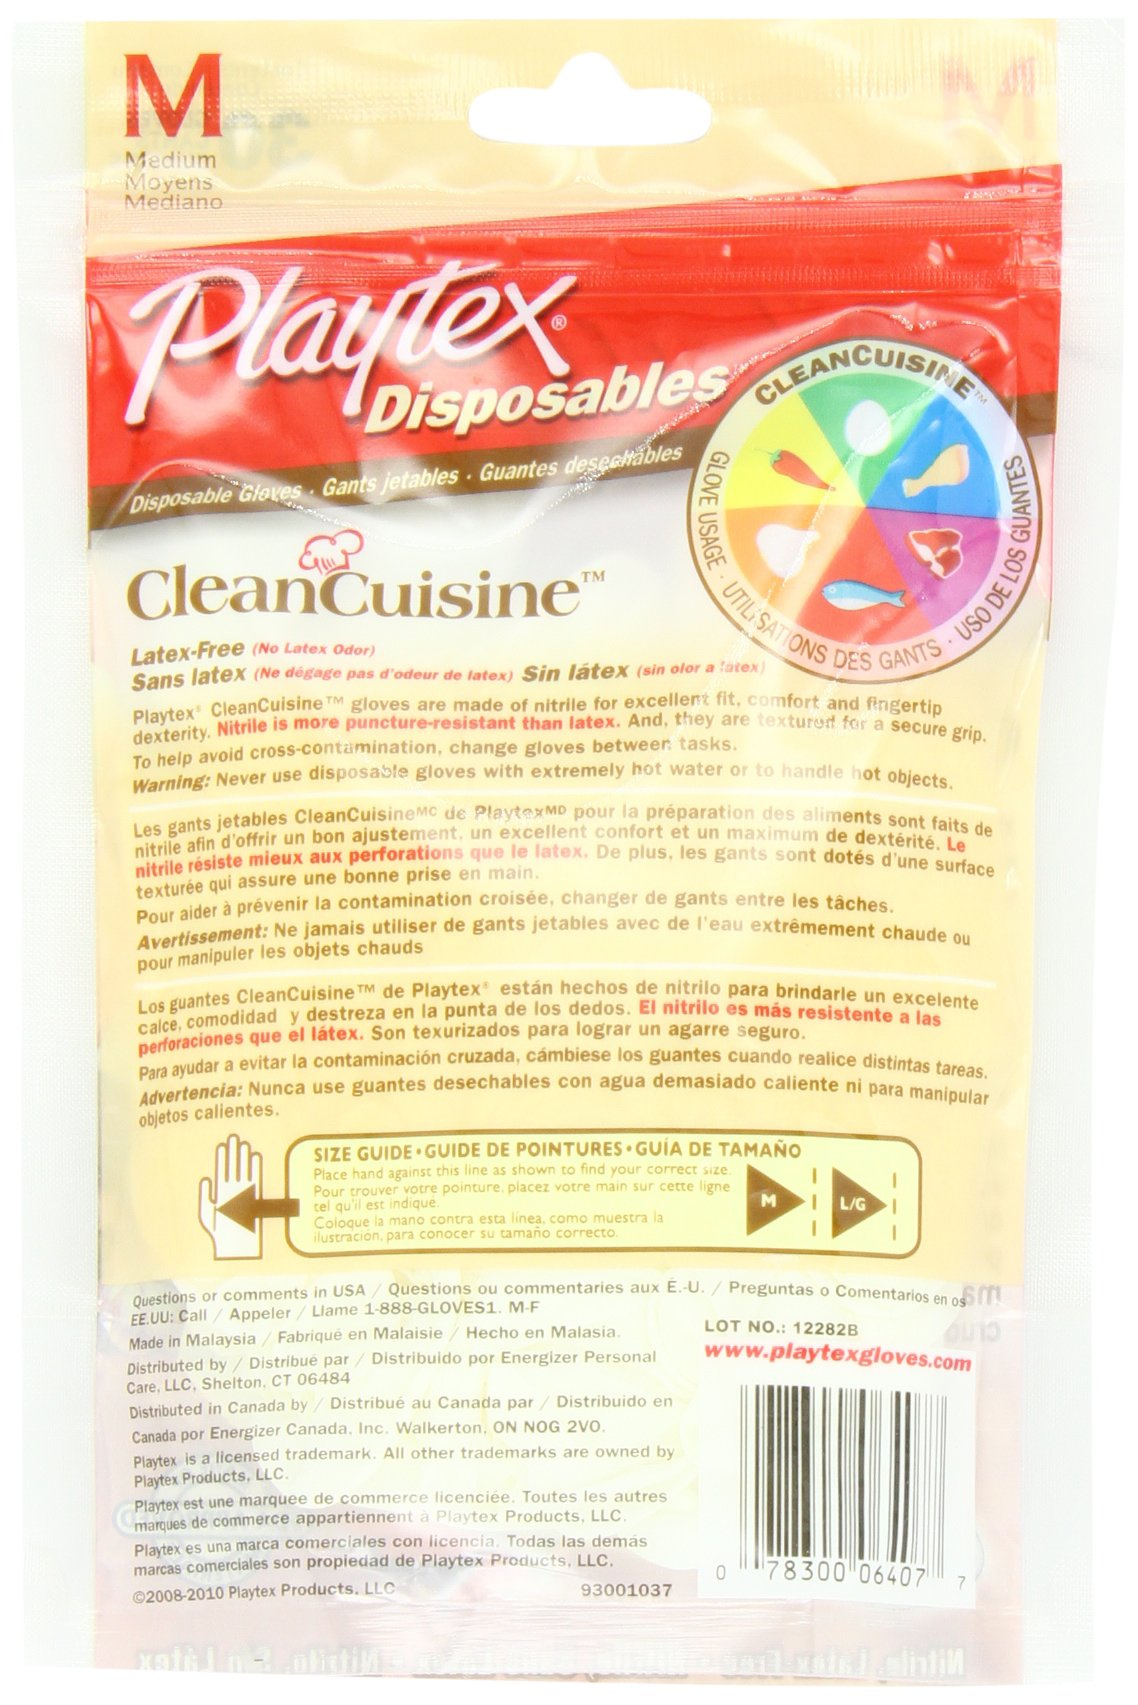 Playtex CleanCuisine Disposable Gloves Medium - 30-Count Package (Pack of 3) by Playtex (Image #2)